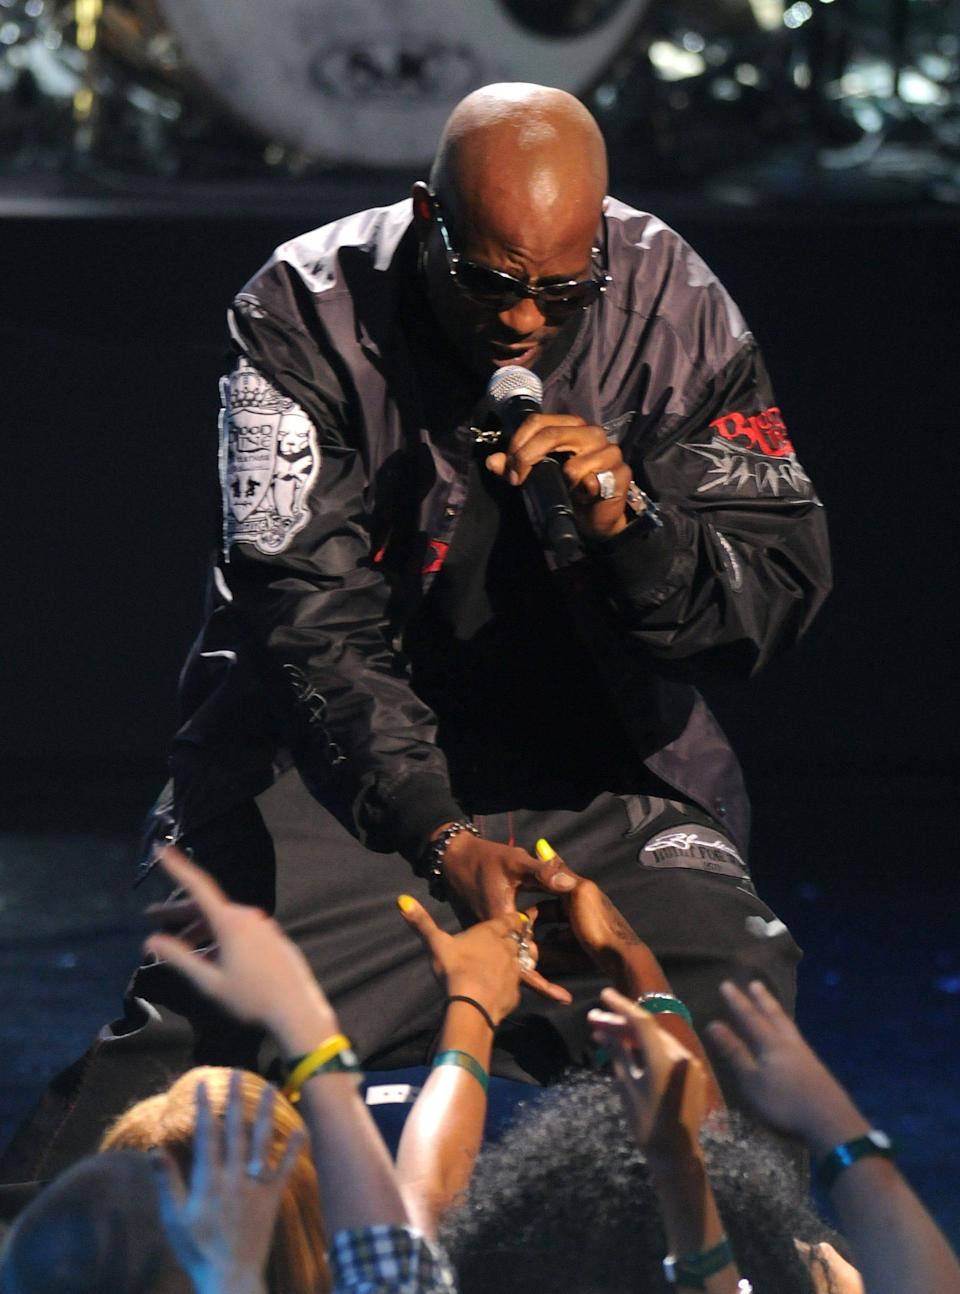 DMX performs at the VH1 Hip Hop Honors at the Brooklyn Academy of Music in New York on Sept. 23, 2009.